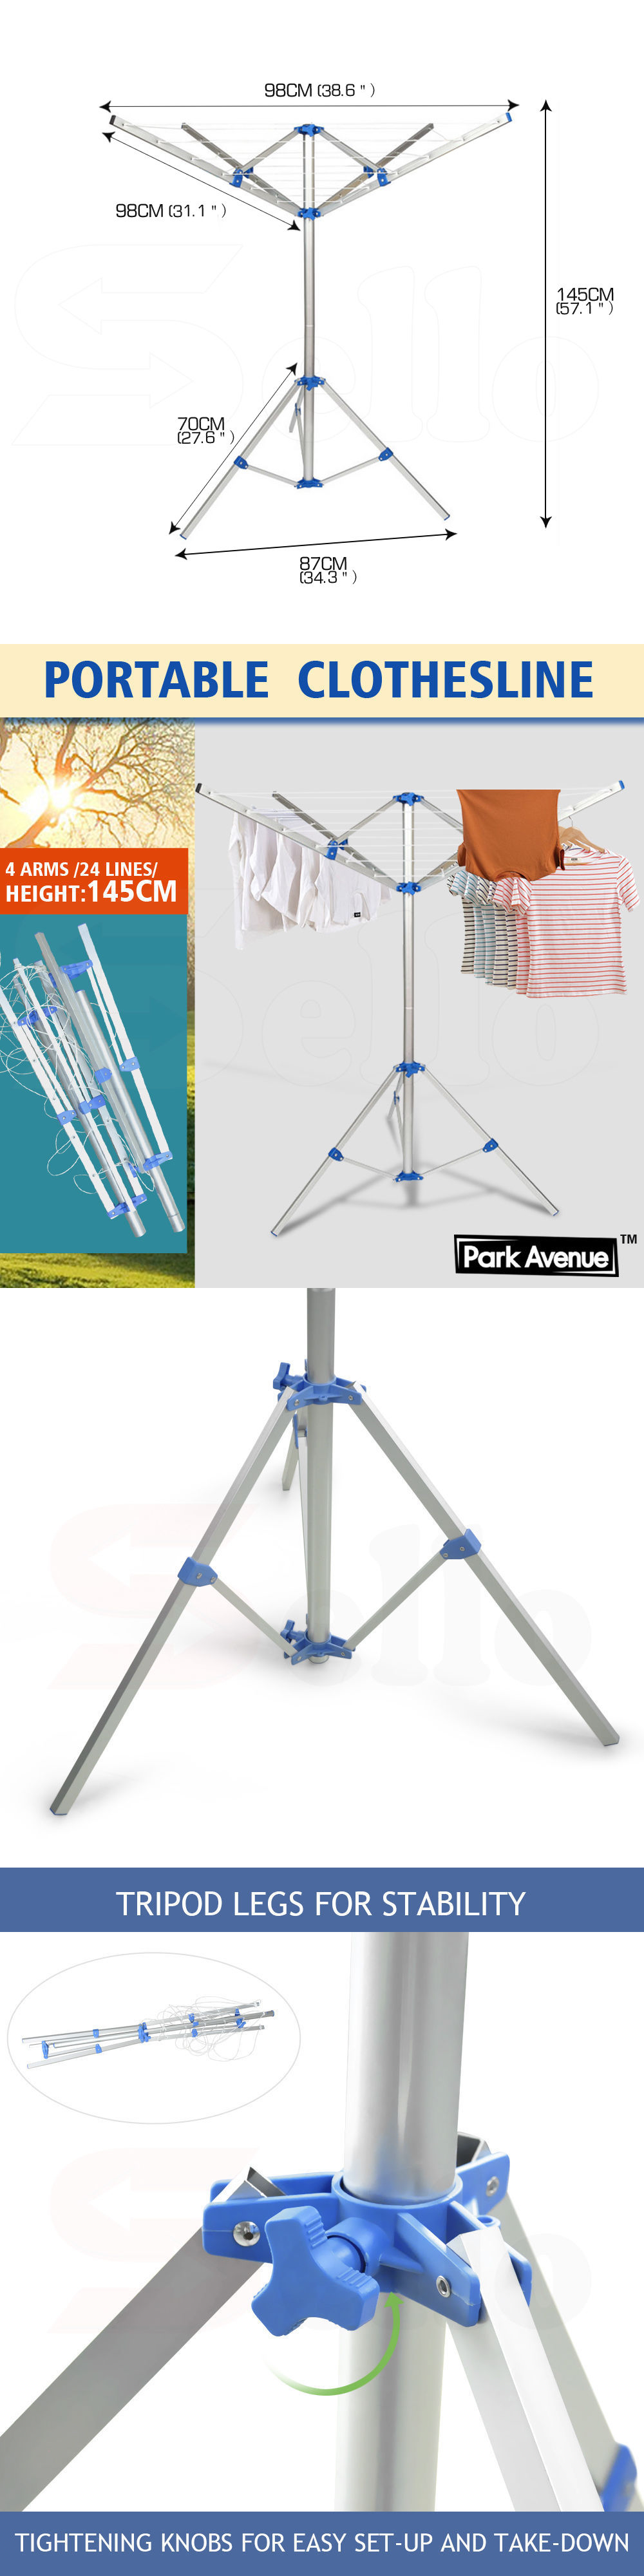 Clotheslines And Laundry Hangers 81241: Portable Umbrella Clothesline Dryer    Hang Wet Or Dry Laundry